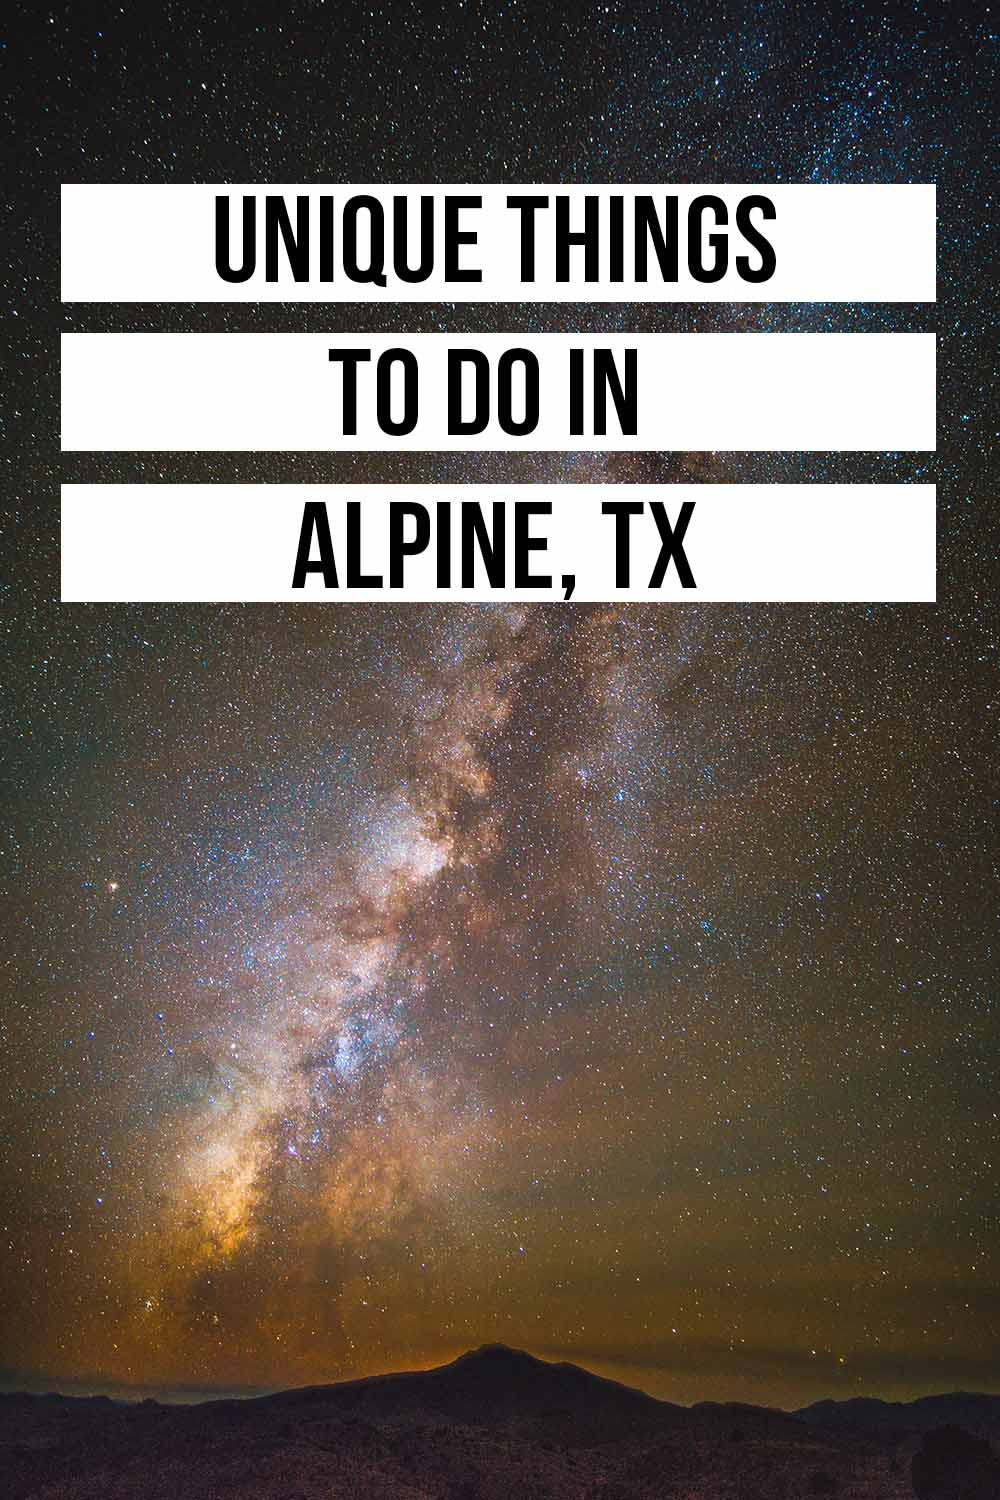 The best things to do in Alpine TX